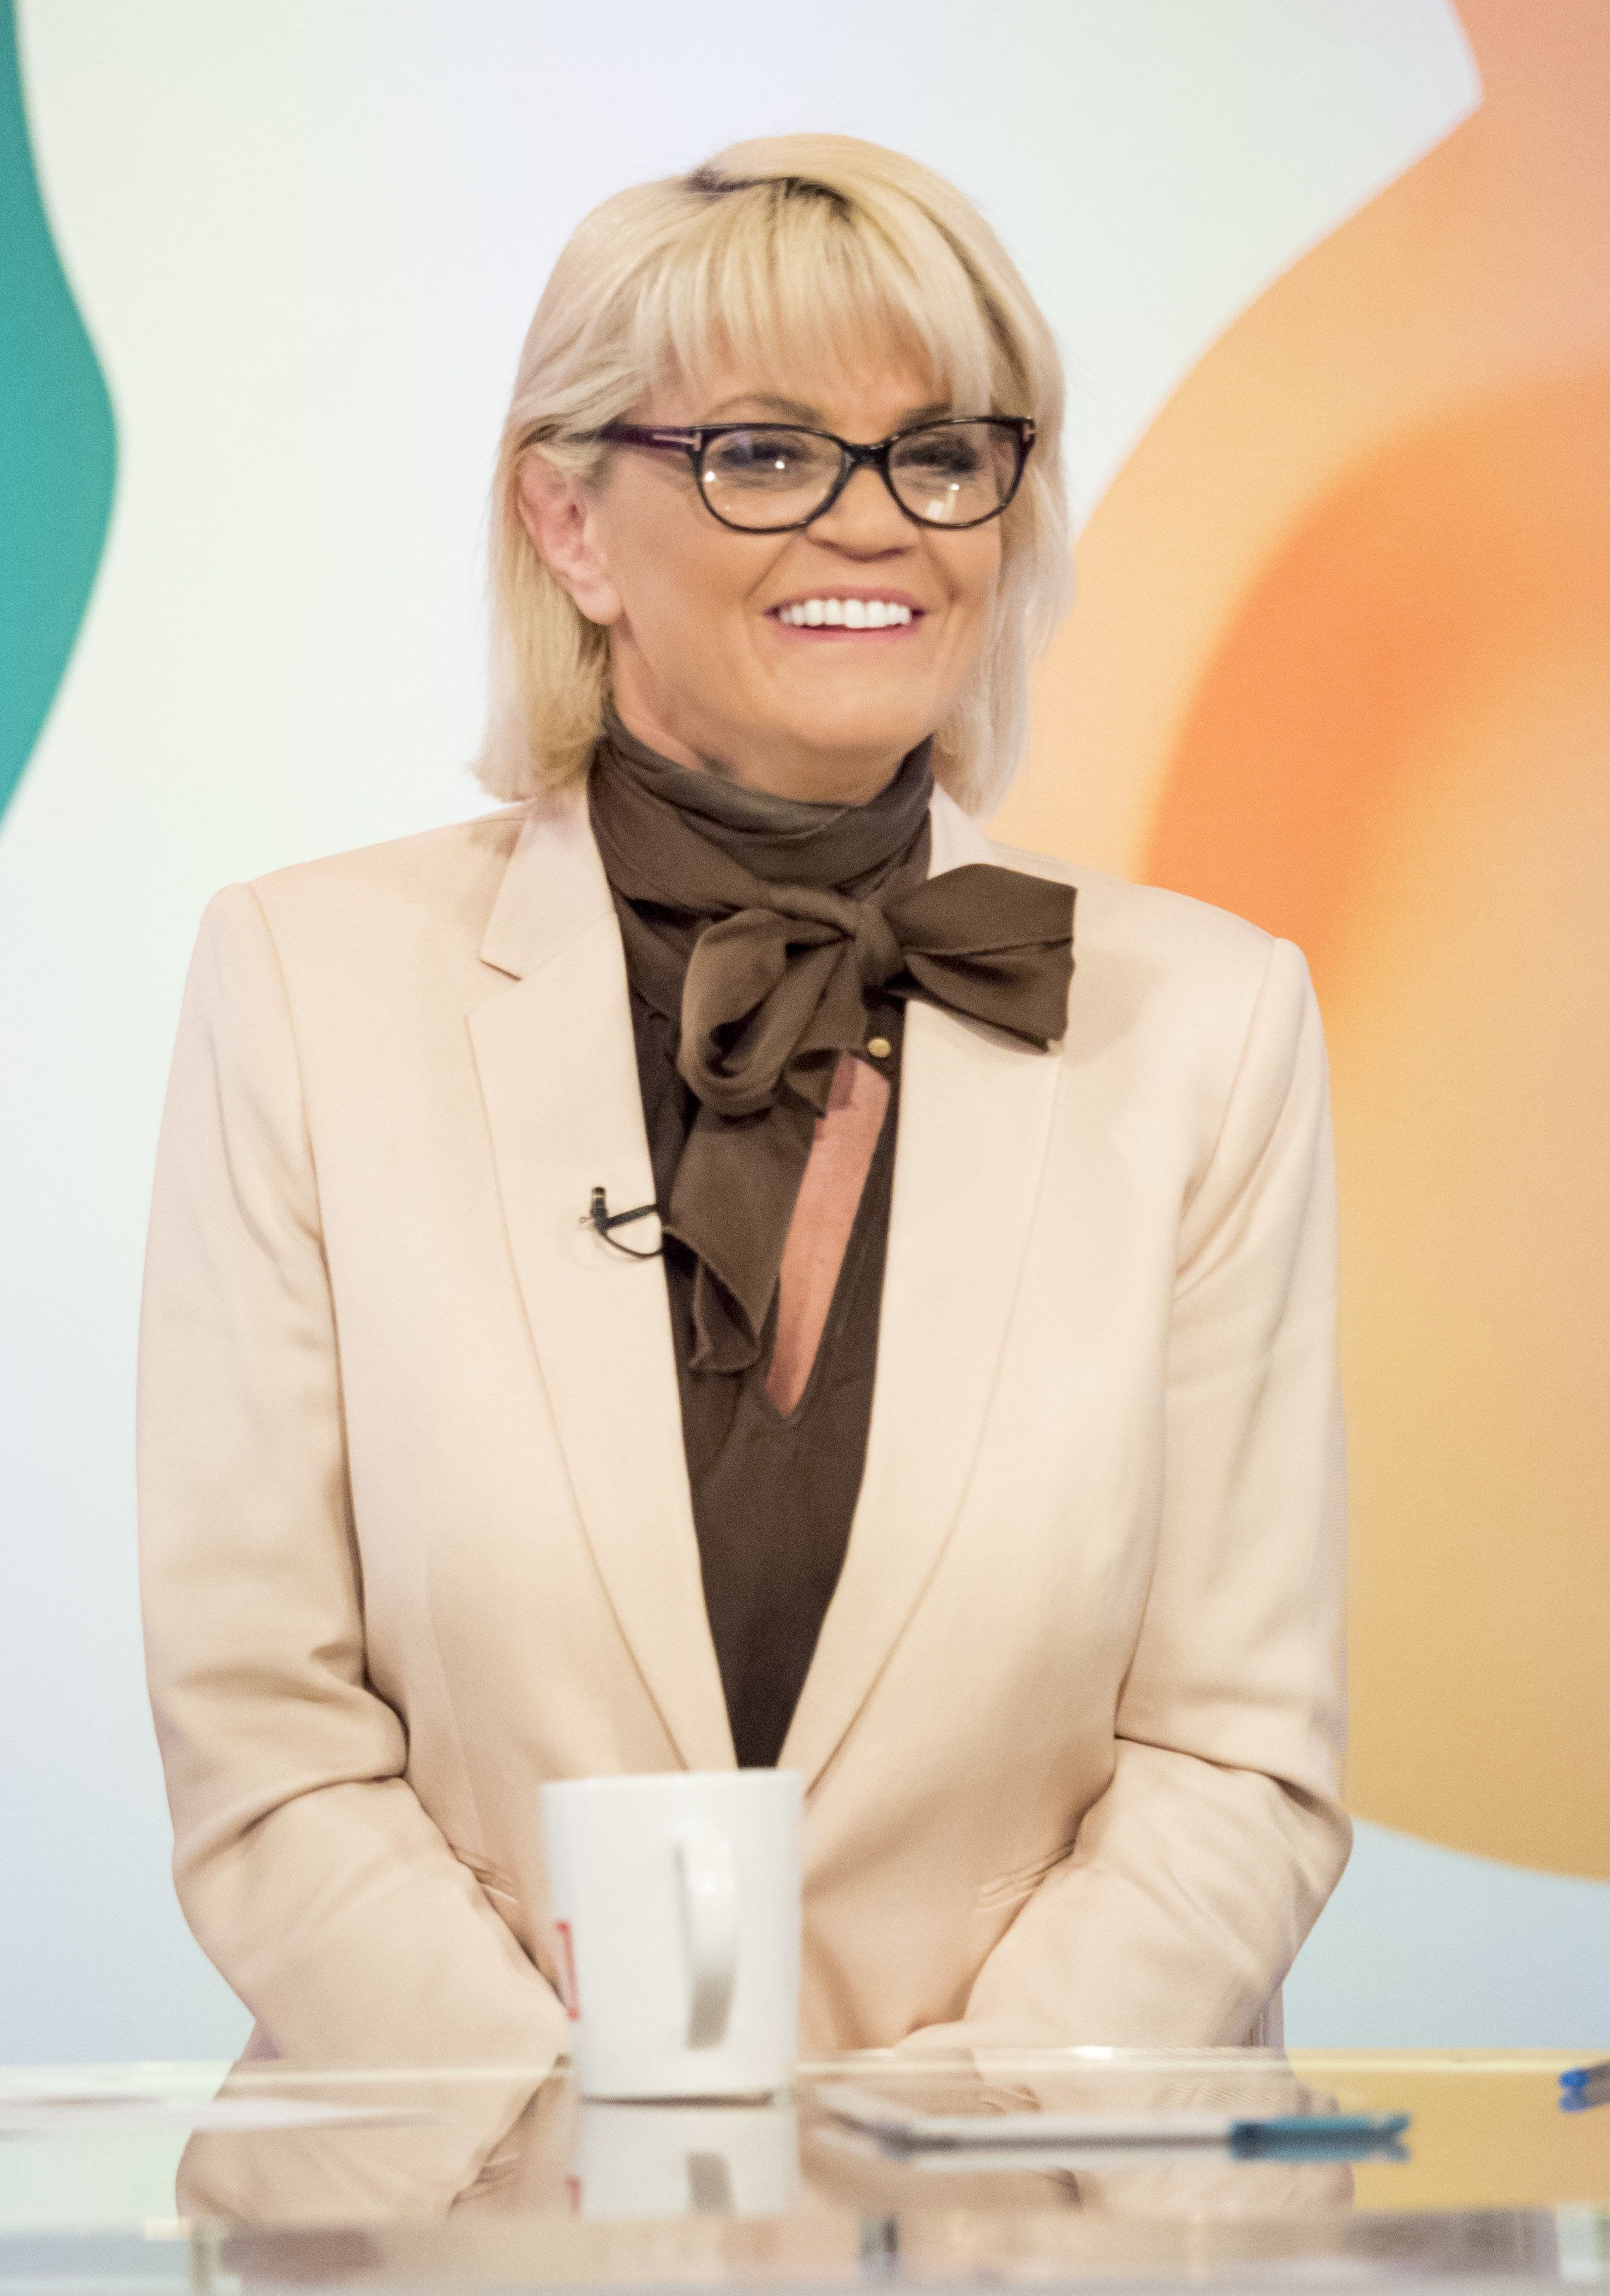 Danniella Westbrook on Thursday's 'Loose